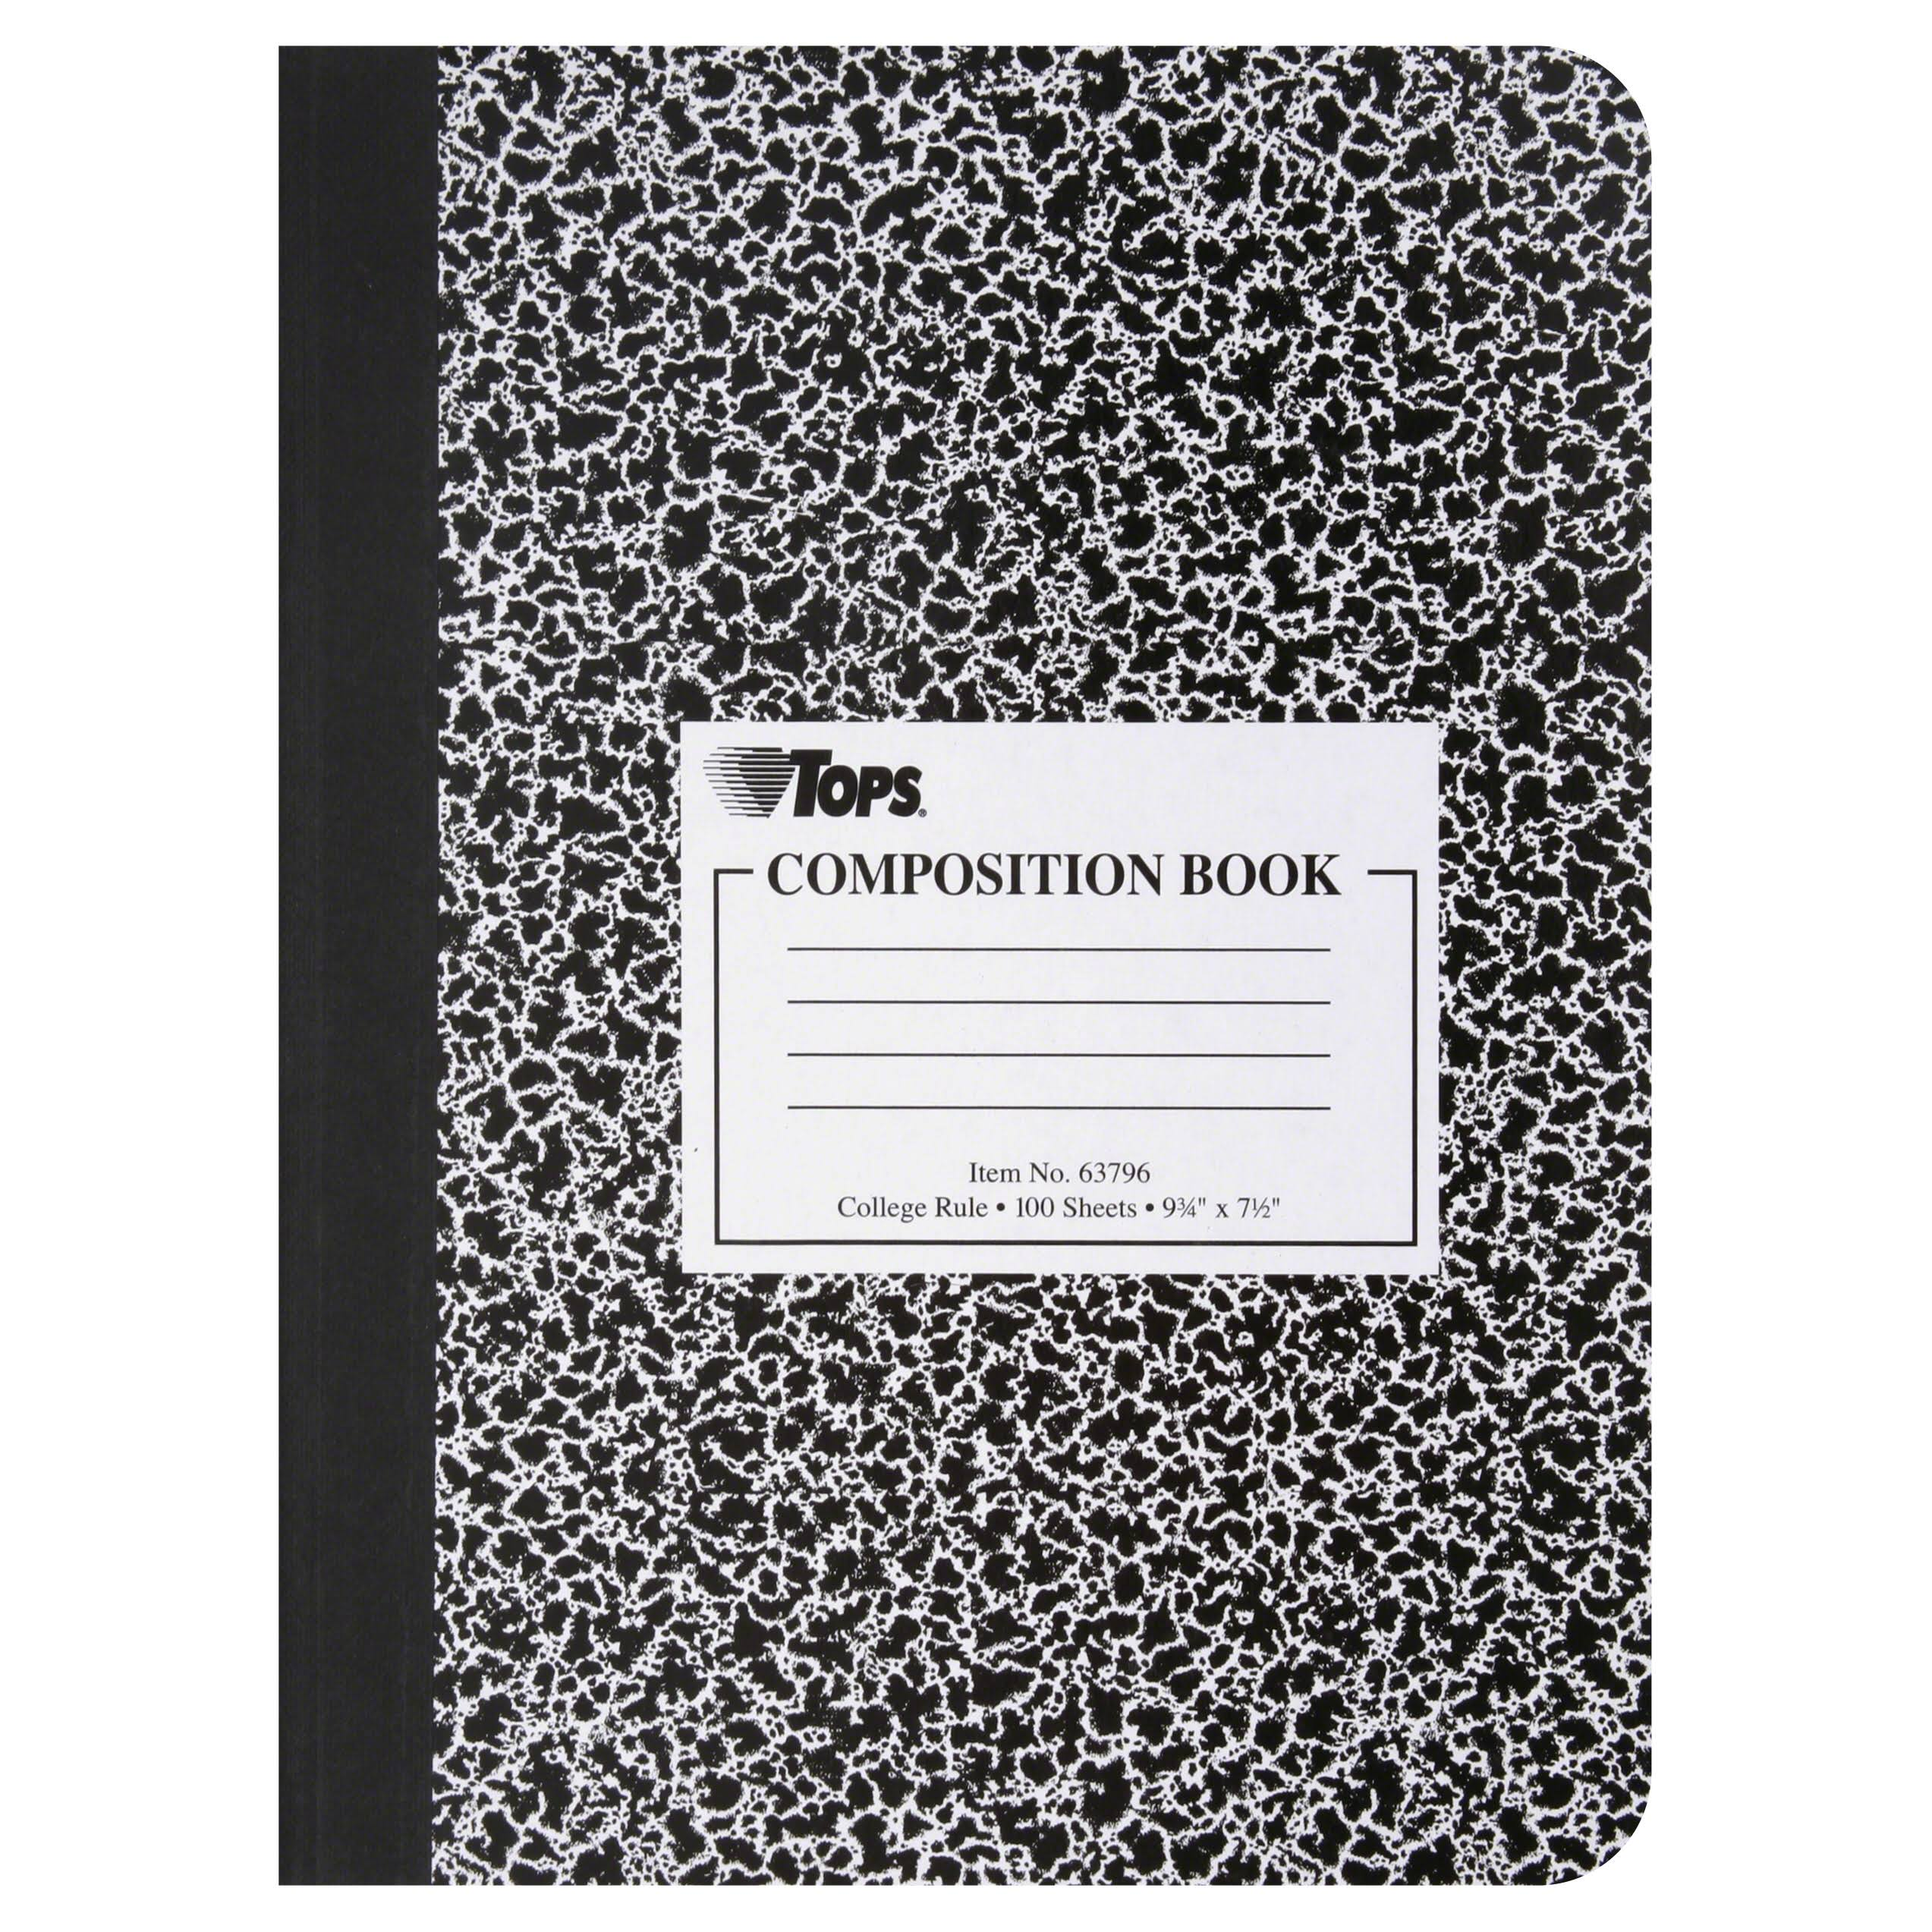 Tops Composition Book, College Rule